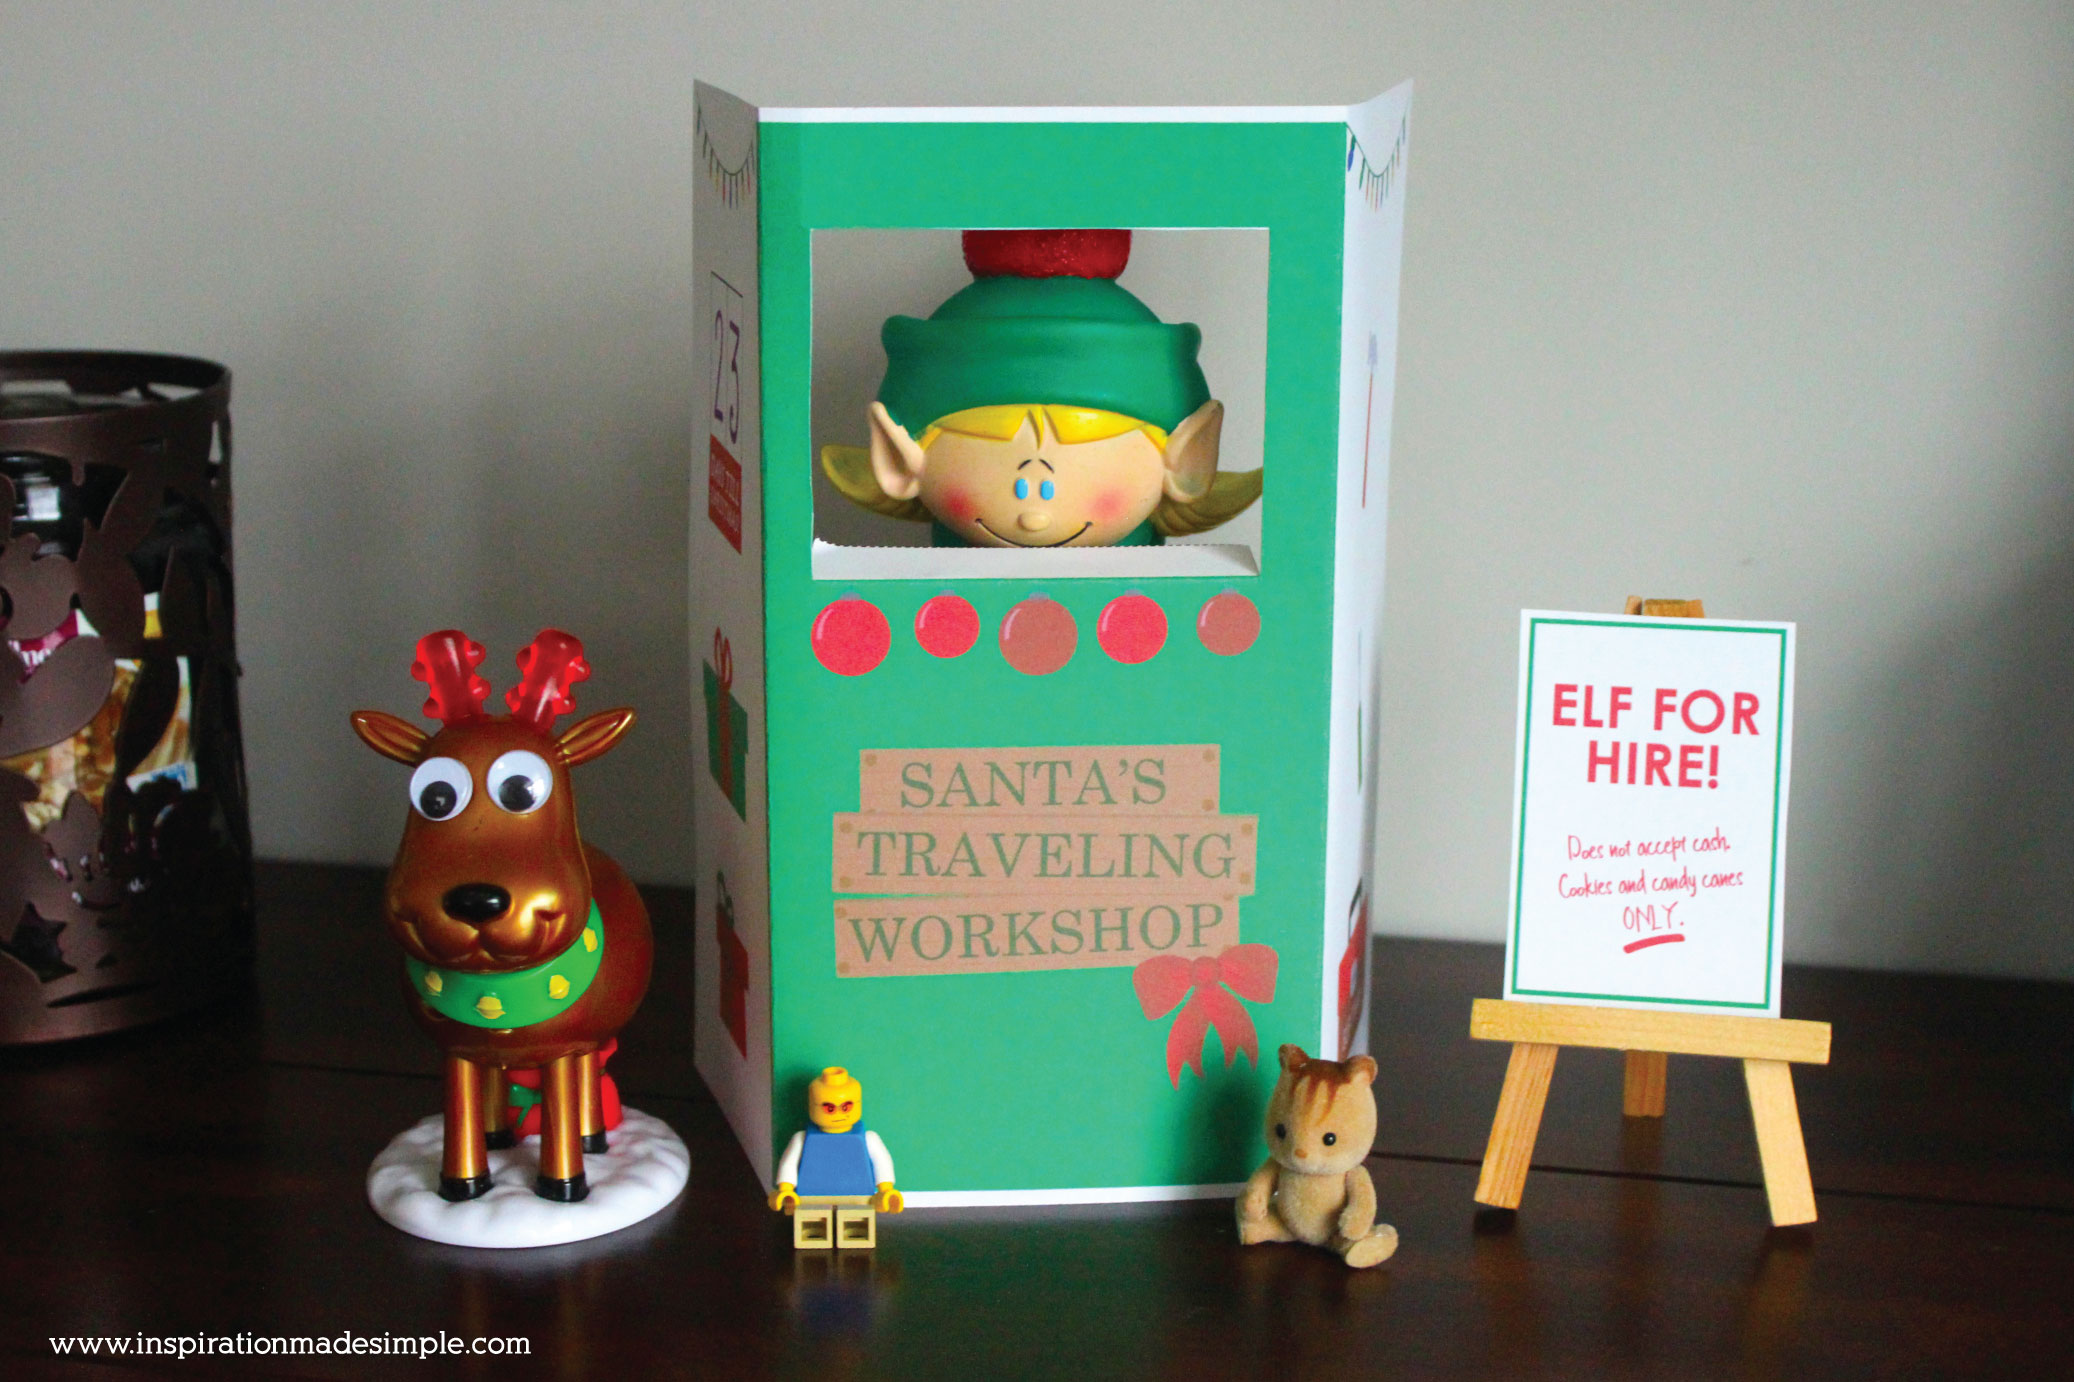 Elf on the Shelf Santa's Traveling Workshop Printable Booth with 4 fun signs